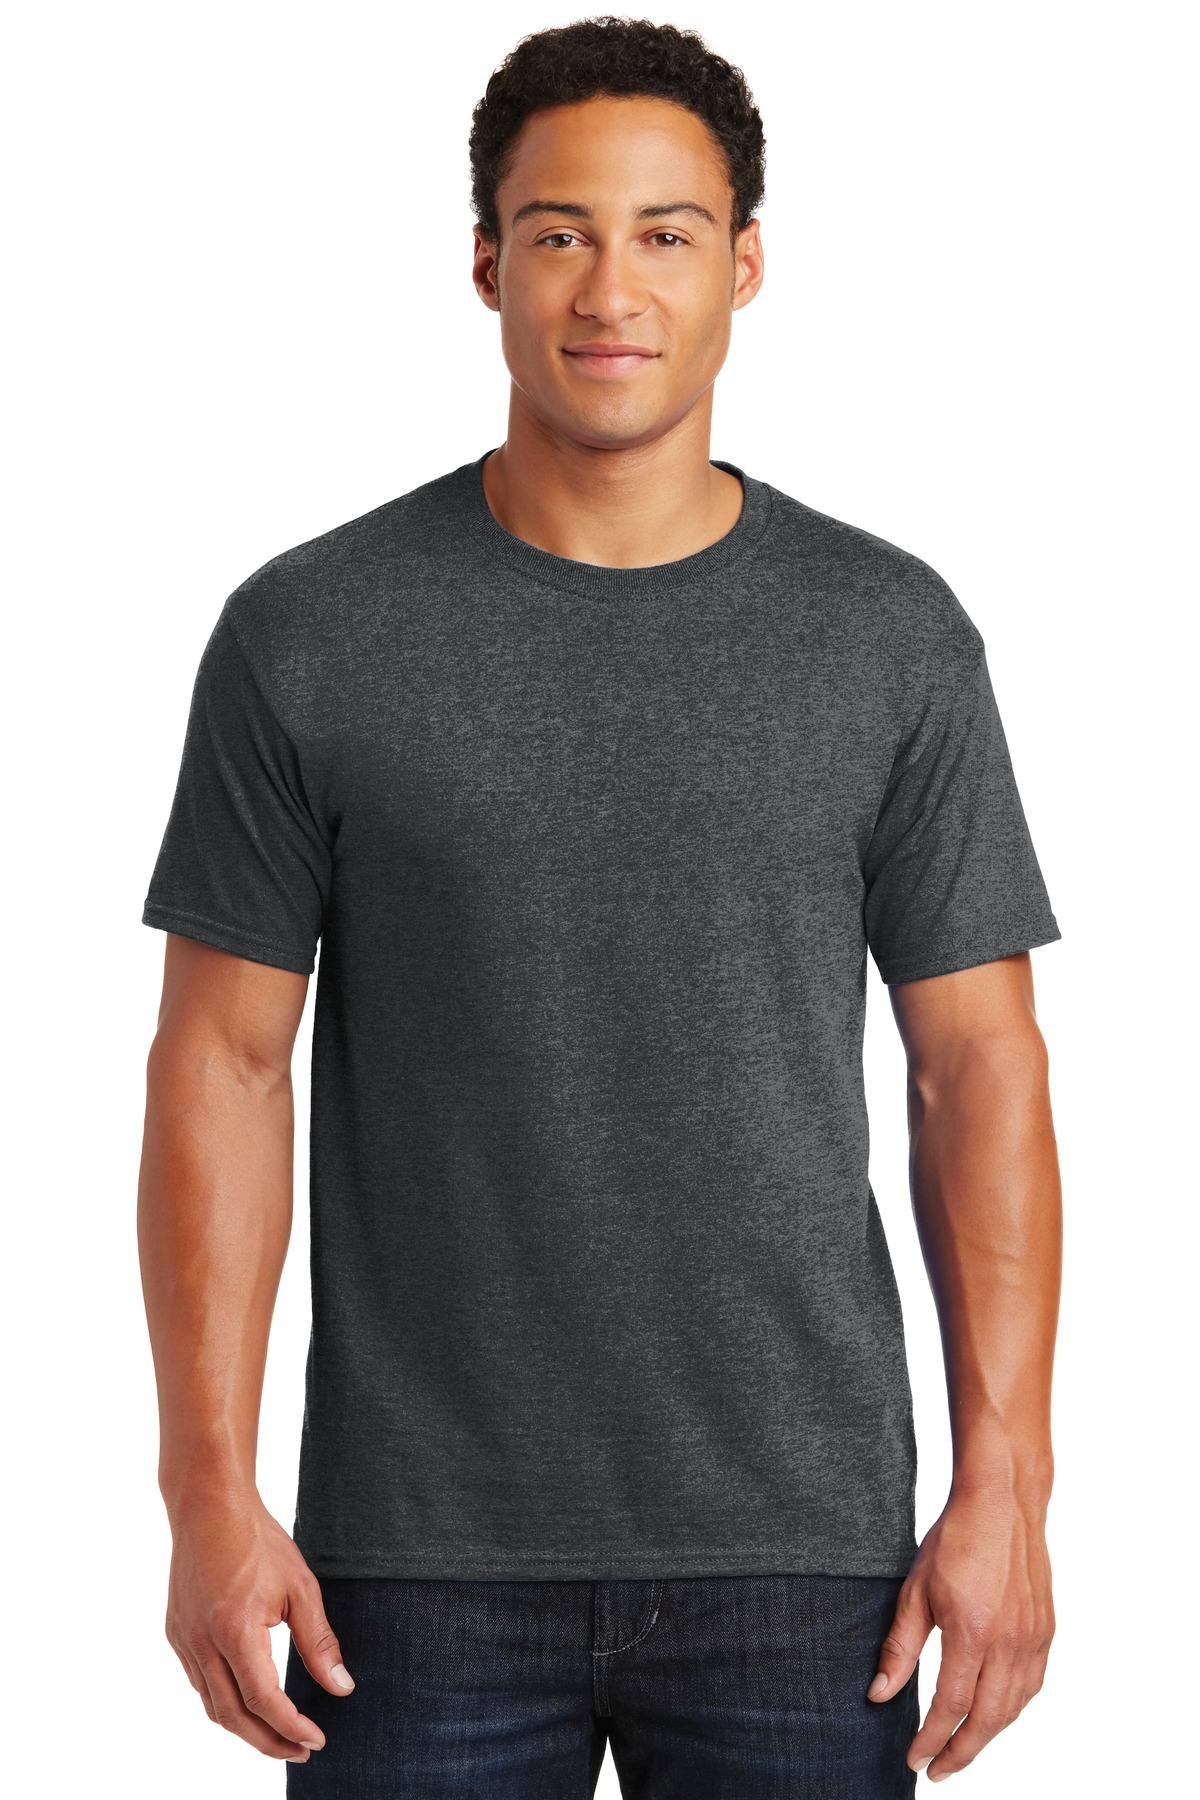 Jerzees® - Dri-Power® Active 50/50 Cotton/Poly T-Shirt.-